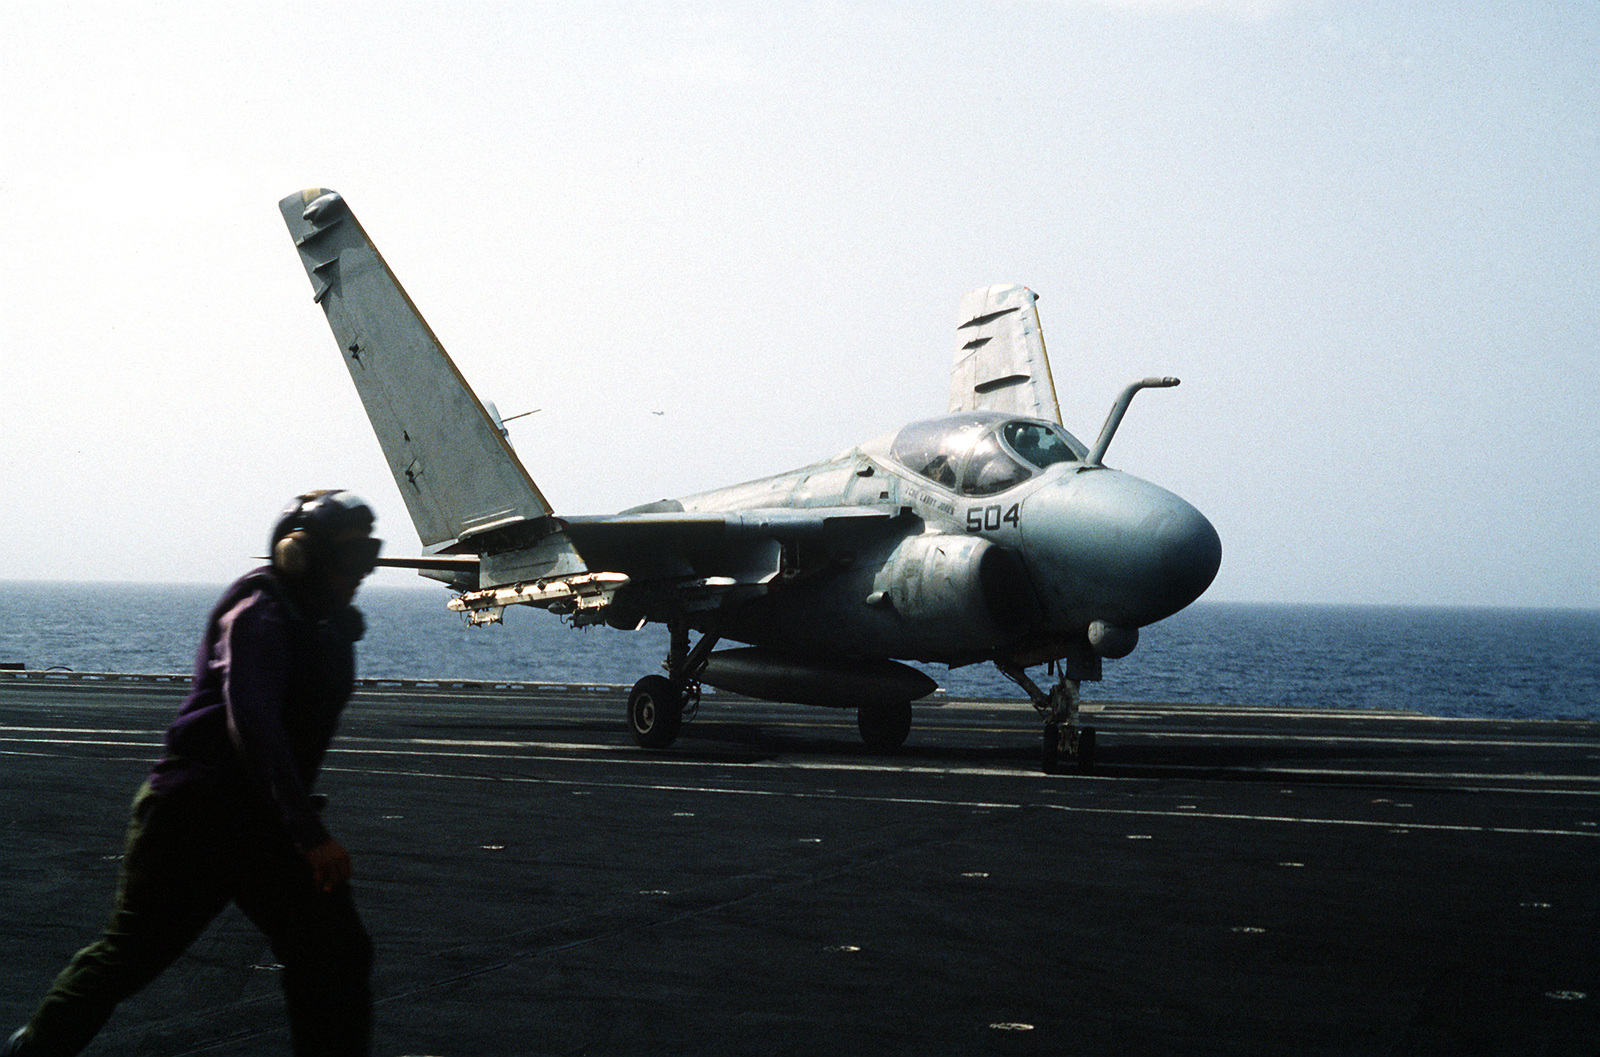 An A-6E Intruder aircraft taxis on the flight deck of the aircraft carrier USS CORAL SEA (CV-43) shortly after landing